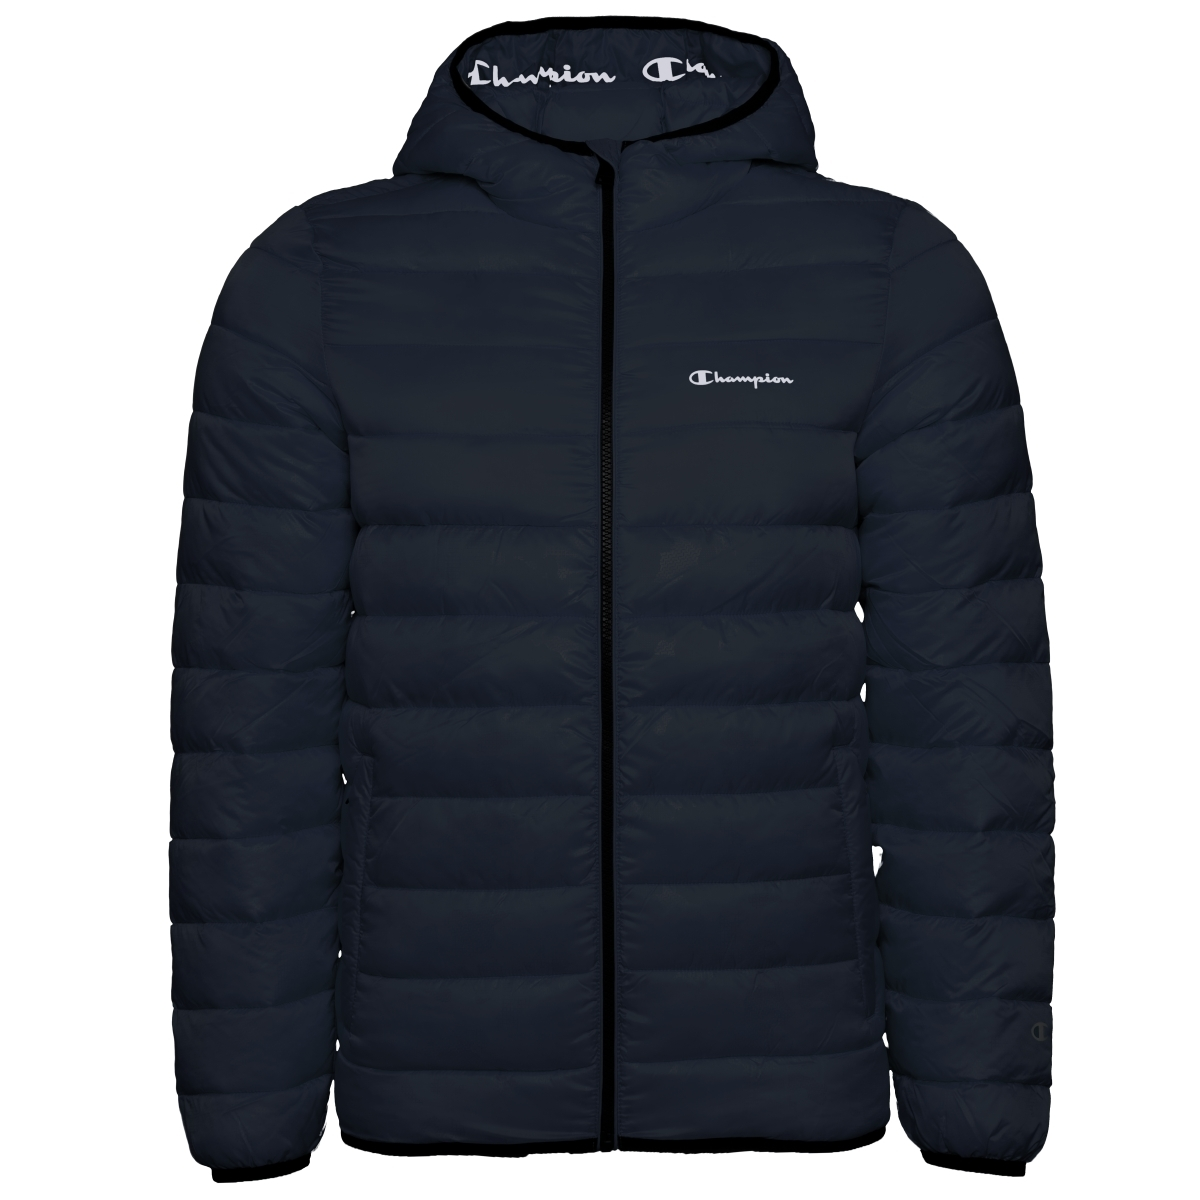 Champion hooded Jacket señores outdoor chaqueta capucha invierno chaqueta 214869-kl001